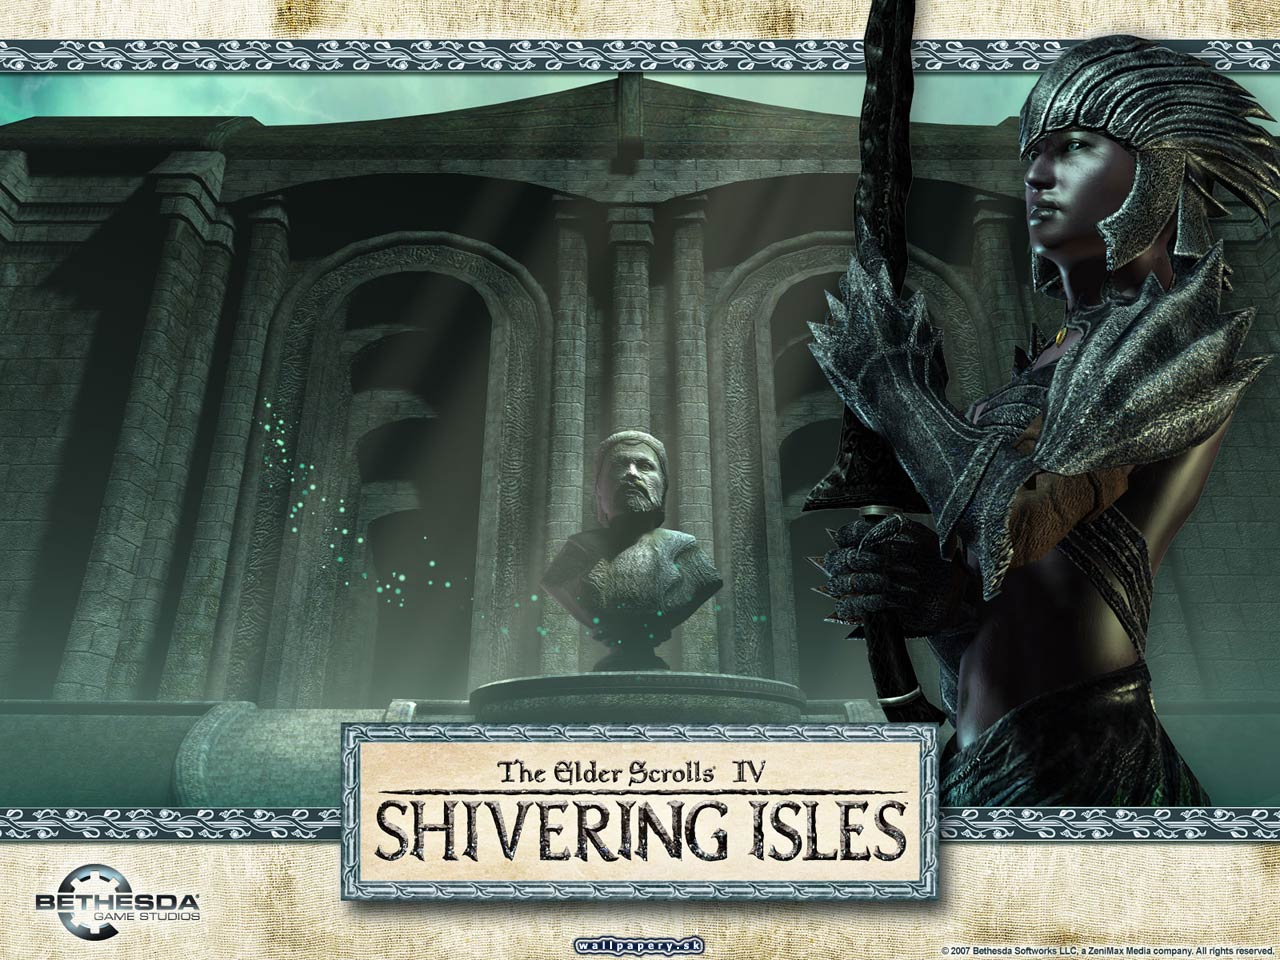 The Elder Scrolls 4: The Shivering Isles - wallpaper 4